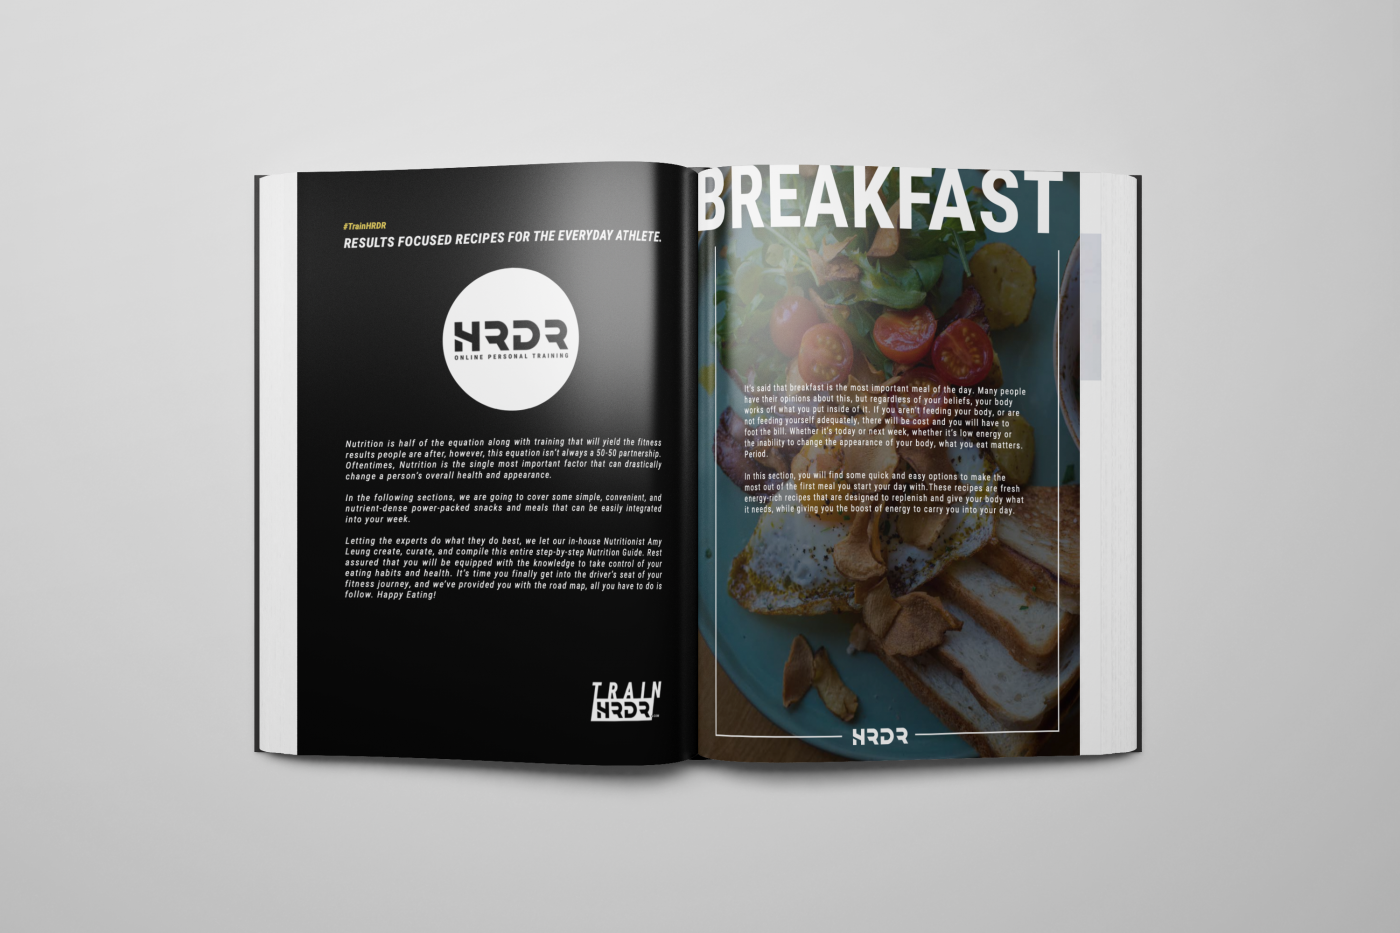 Introducing HRDR Bites: Results Focused Recipes